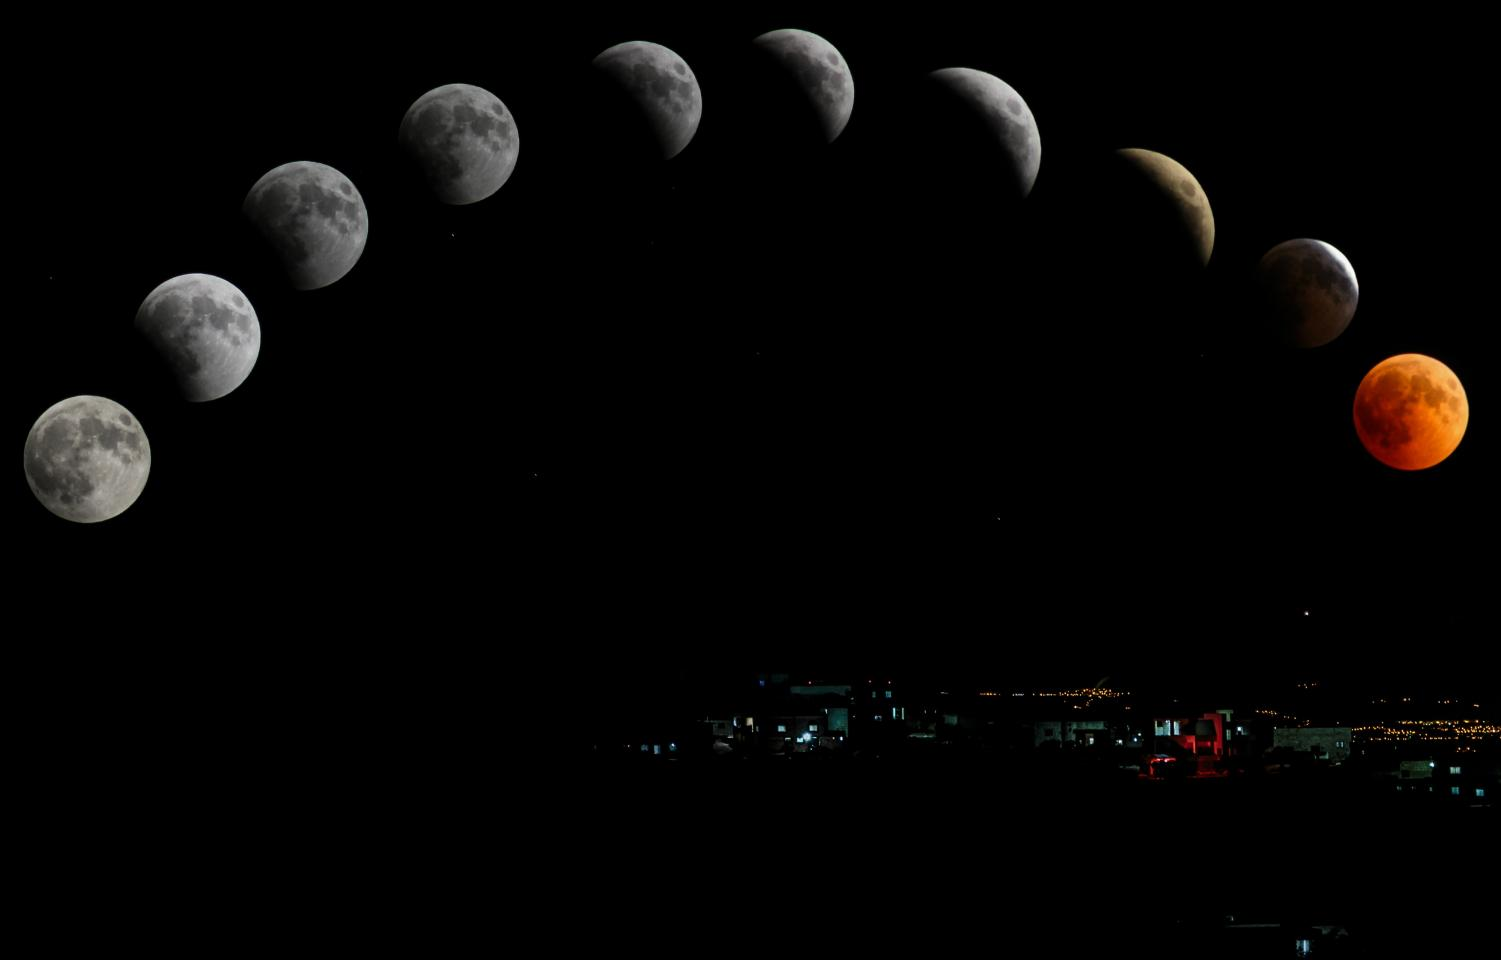 Phases of the moon as it transitions into a total lunar eclipse.